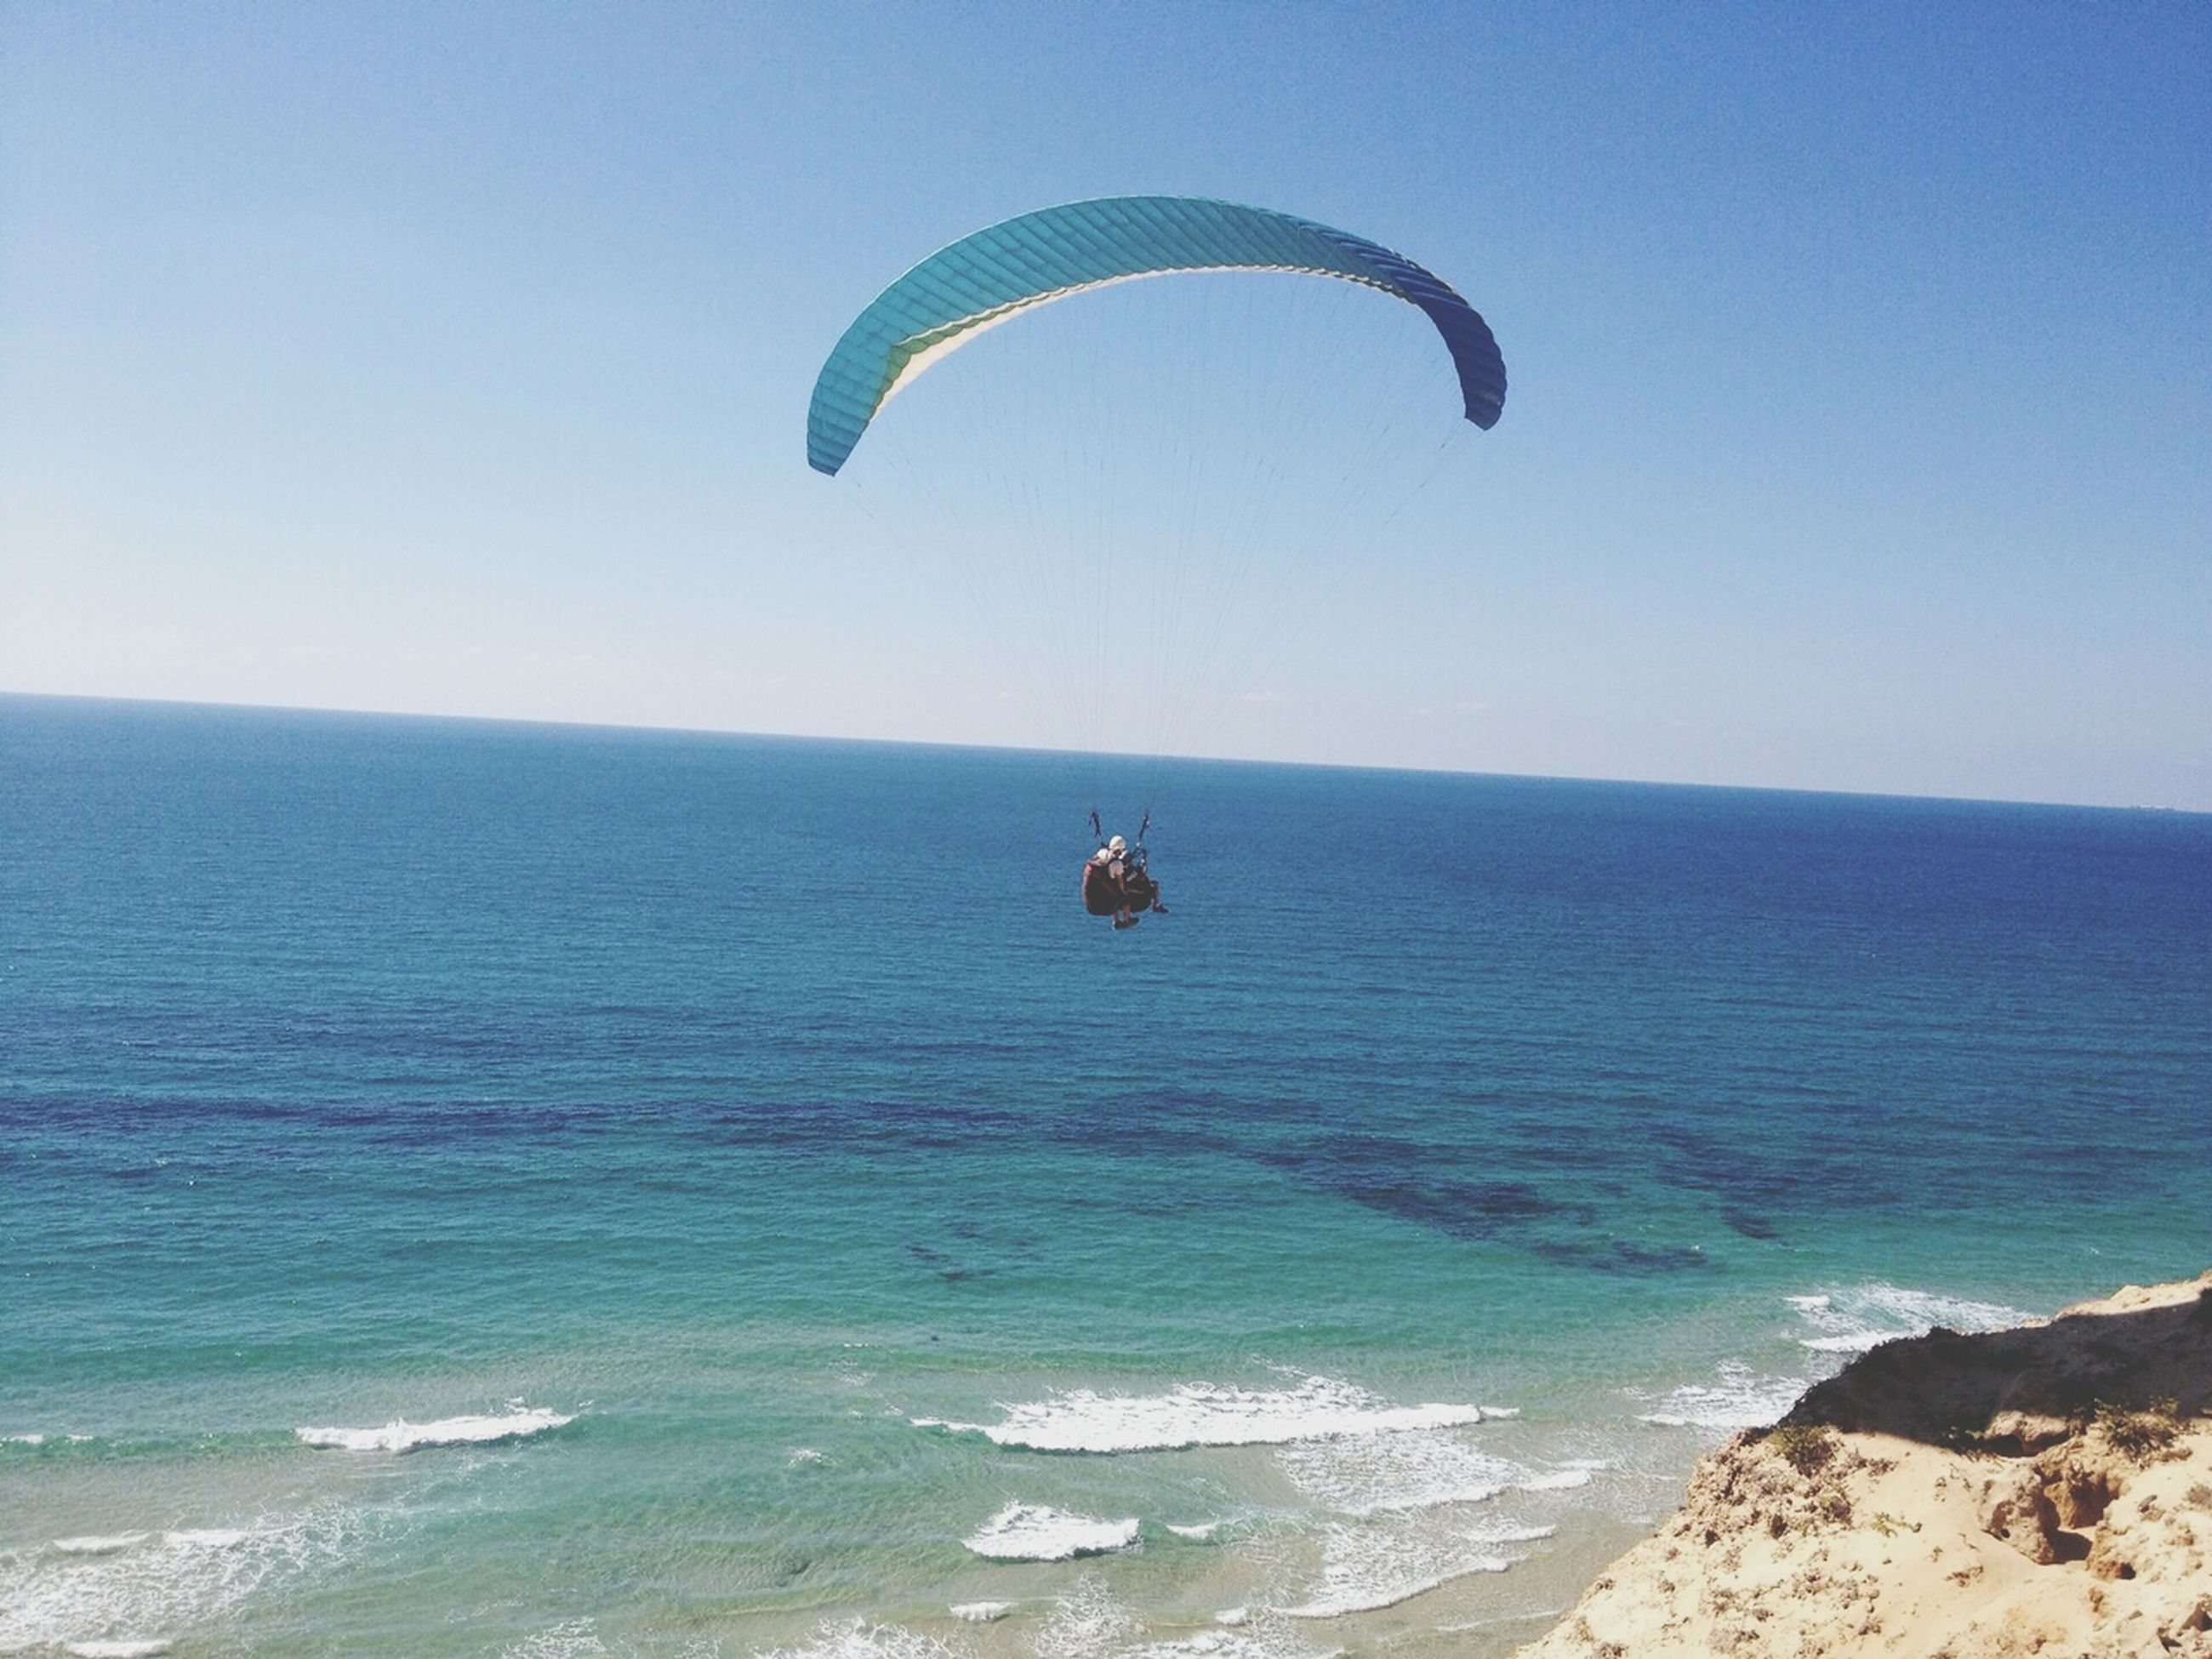 sea, parachute, leisure activity, beach, water, mid-air, extreme sports, horizon over water, adventure, flying, paragliding, lifestyles, vacations, sport, blue, clear sky, scenics, tranquility